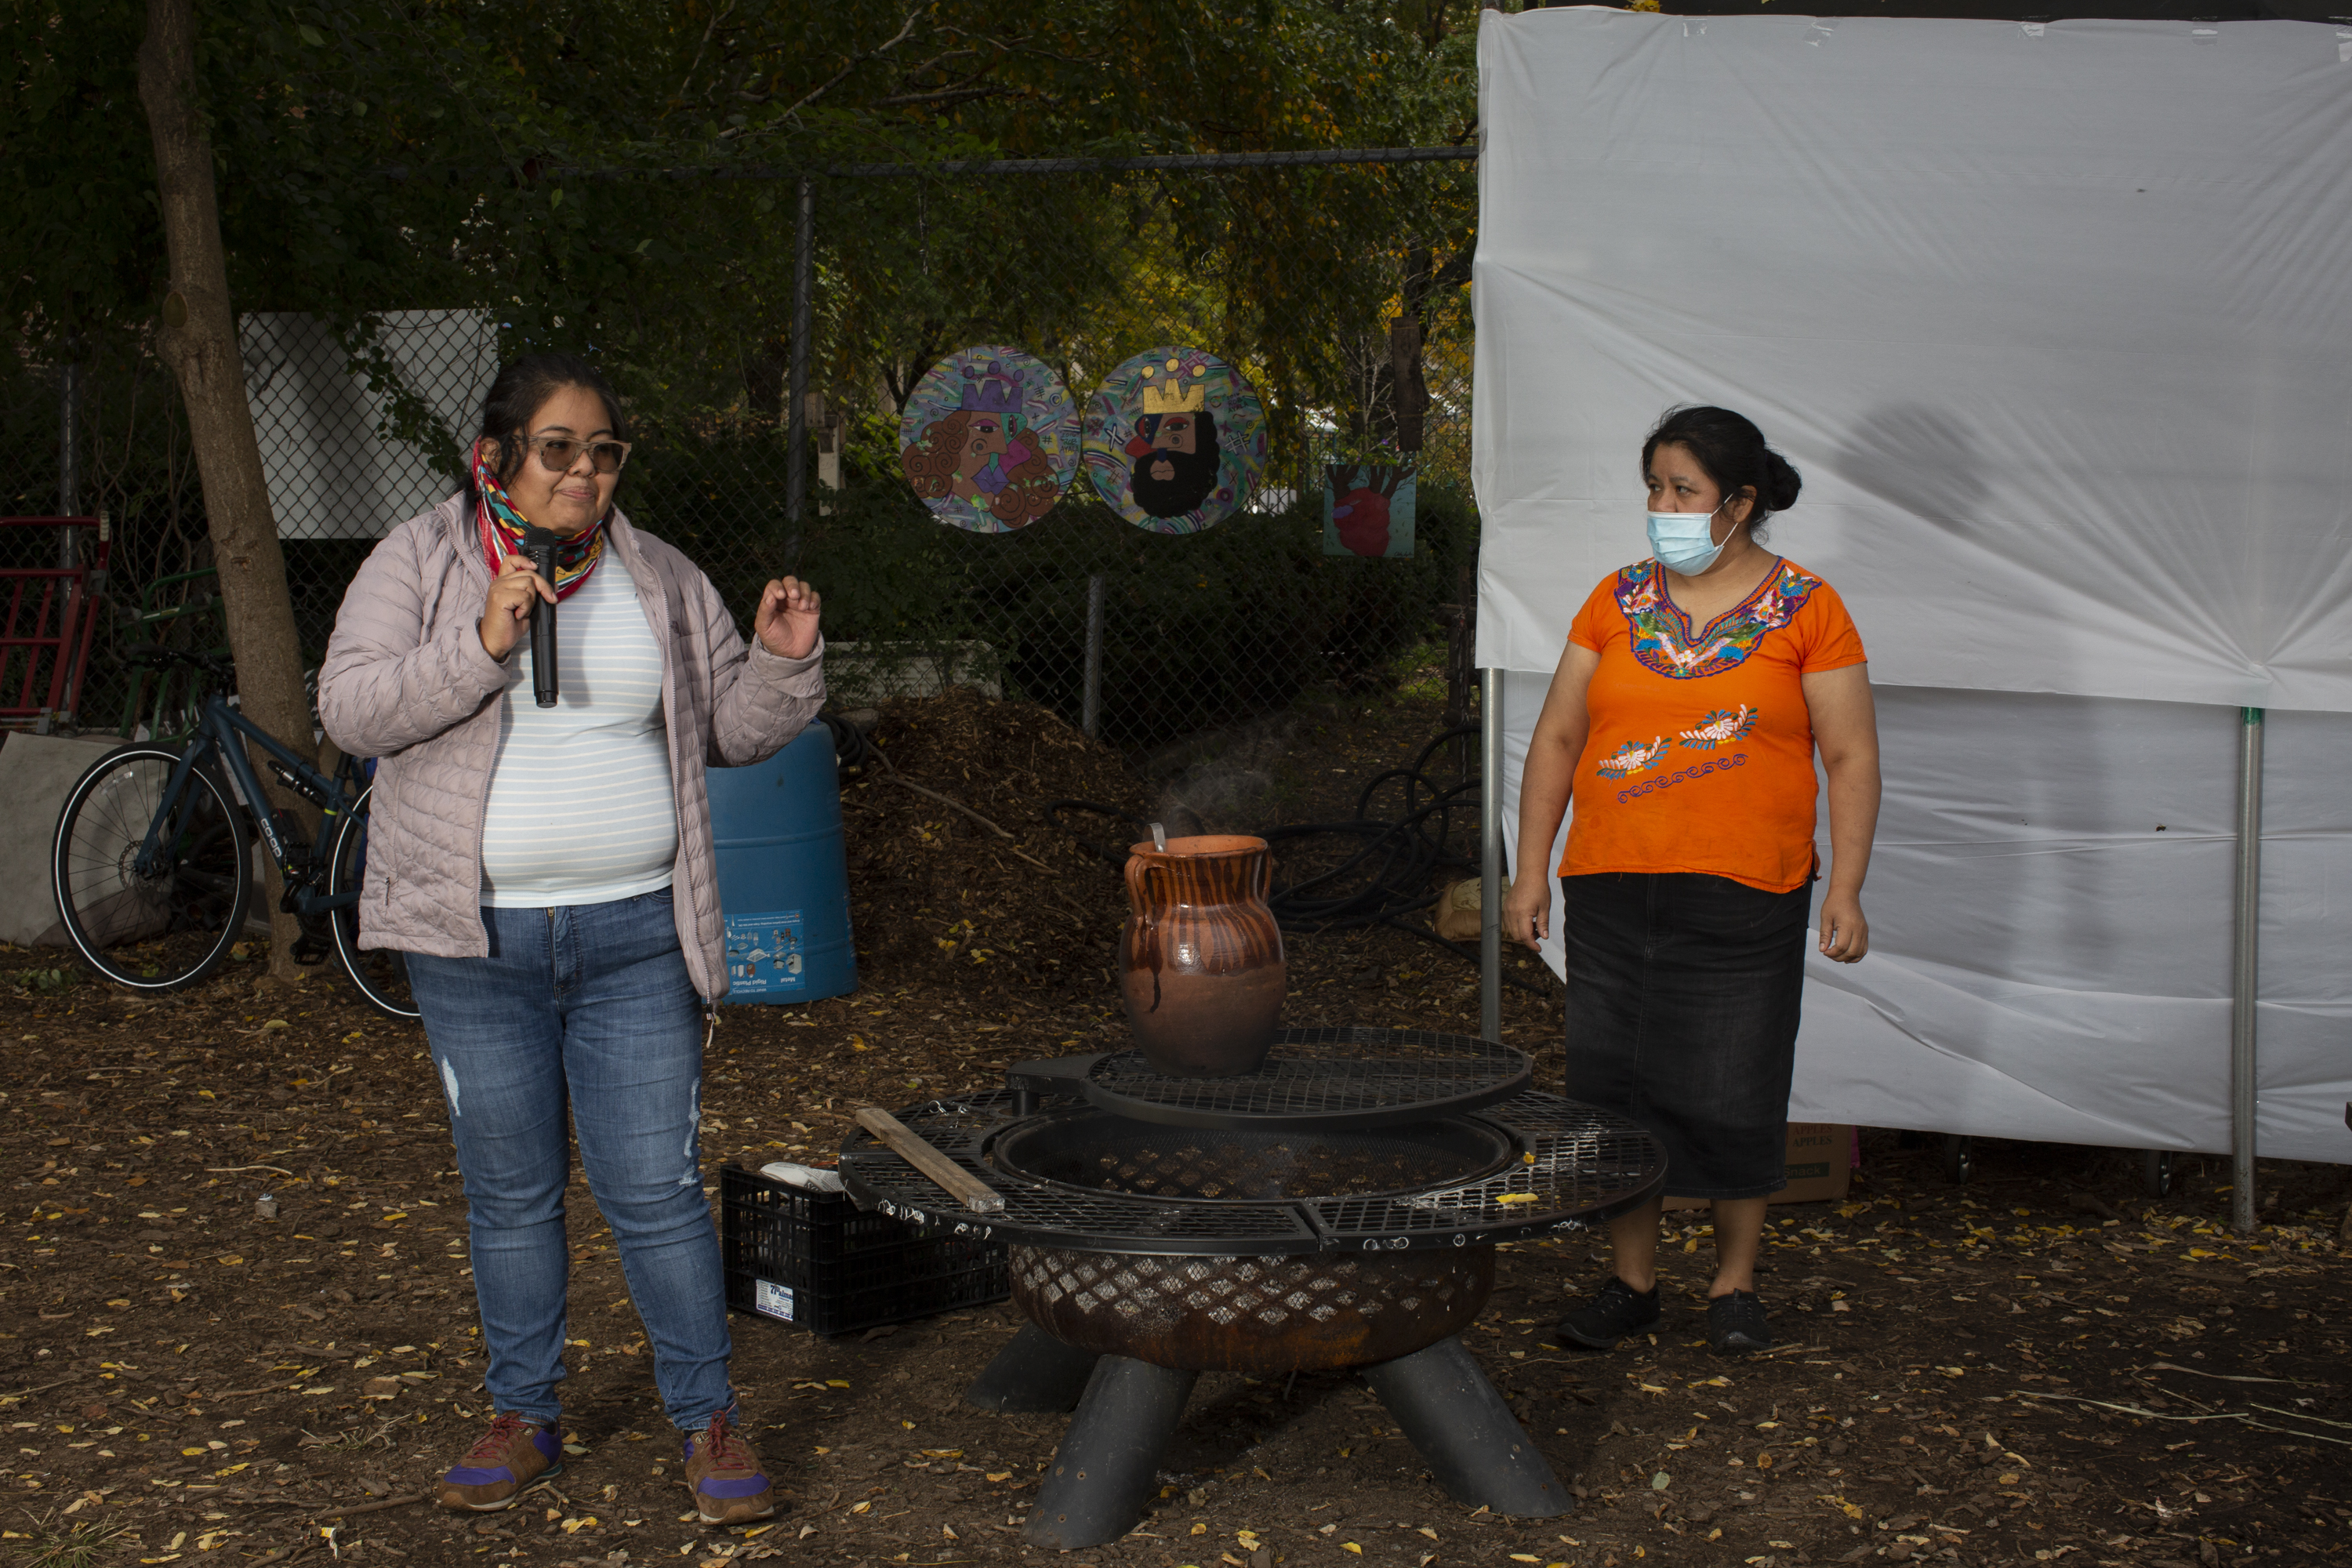 Yajaira, wearing a white shirt, a soft pink jacket, a scarf, and jeans, shares a memory with the participants of the workshop (out of frame). She stands near the fire. Natalia stands near Yajaira, to her left, wearing an Indigenous Mexican embroidered shirt (orange with flowers), a long black skirt, and a medical mask. Photo by Cinthya Santos-Briones for Brewing Memories workshop, October 24, 2020.